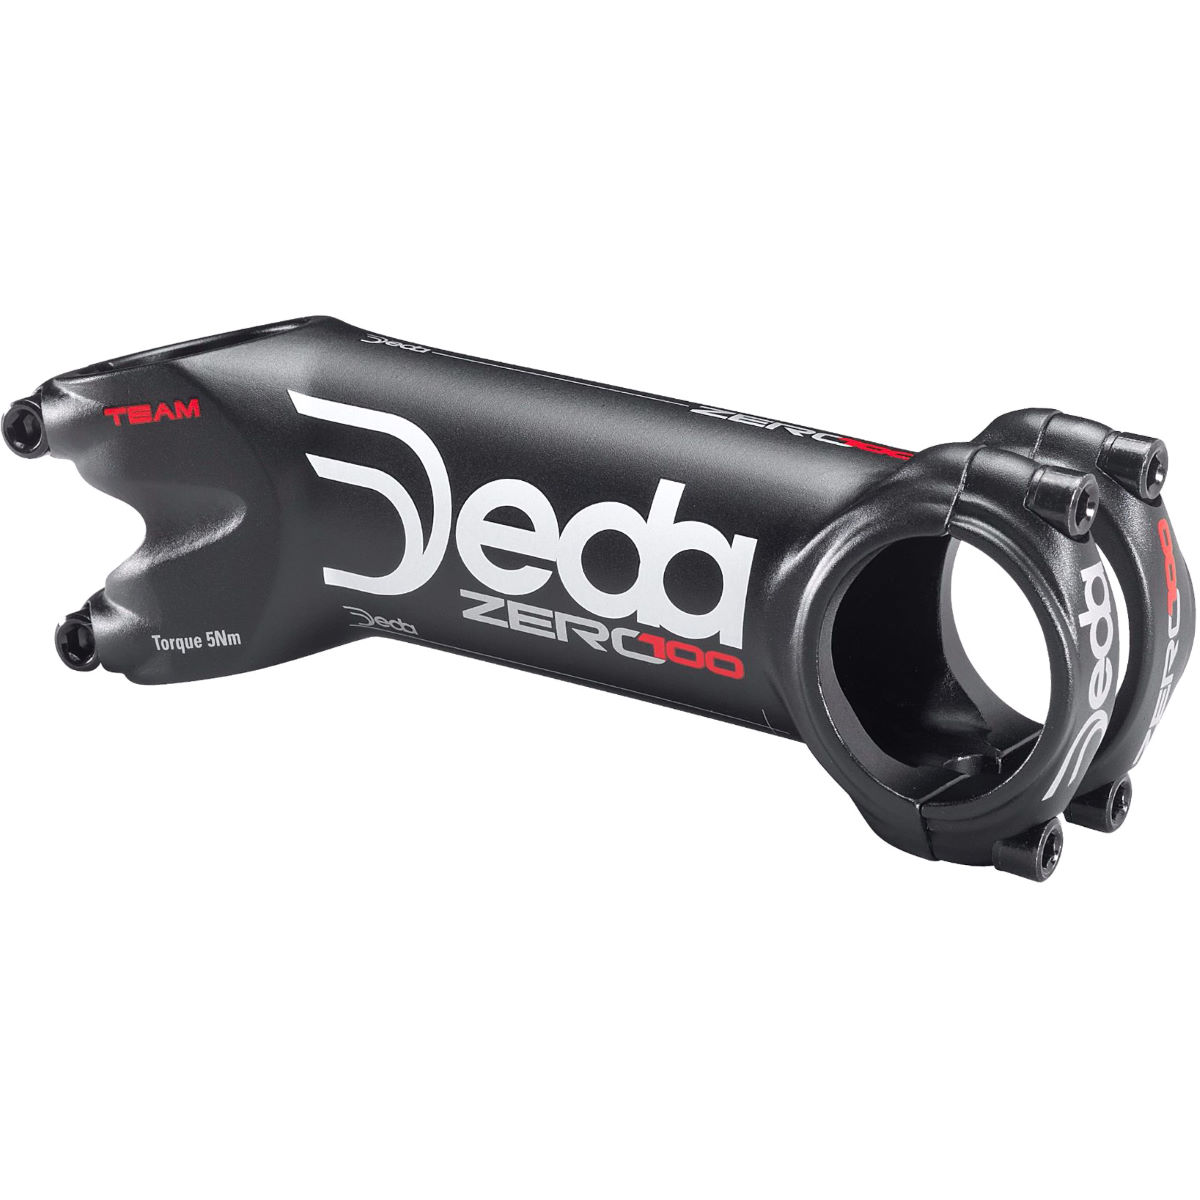 Deda Zero100 Team Stem - 100mm Black | Stems